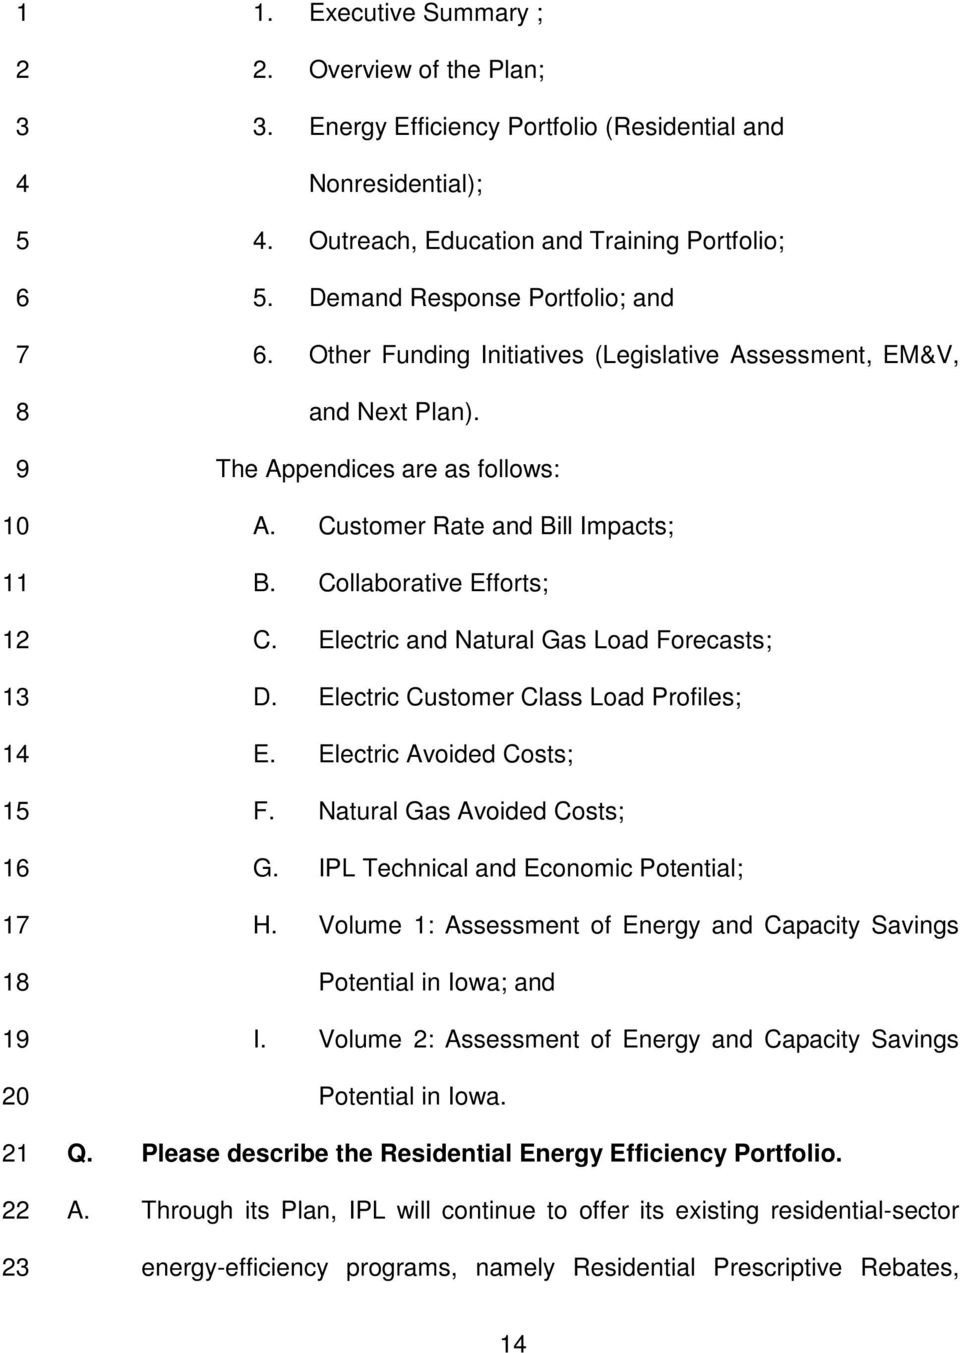 Electric and Natural Gas Load Forecasts; D. Electric Customer Class Load Profiles; E. Electric Avoided Costs; F. Natural Gas Avoided Costs; G. IPL Technical and Economic Potential; H.